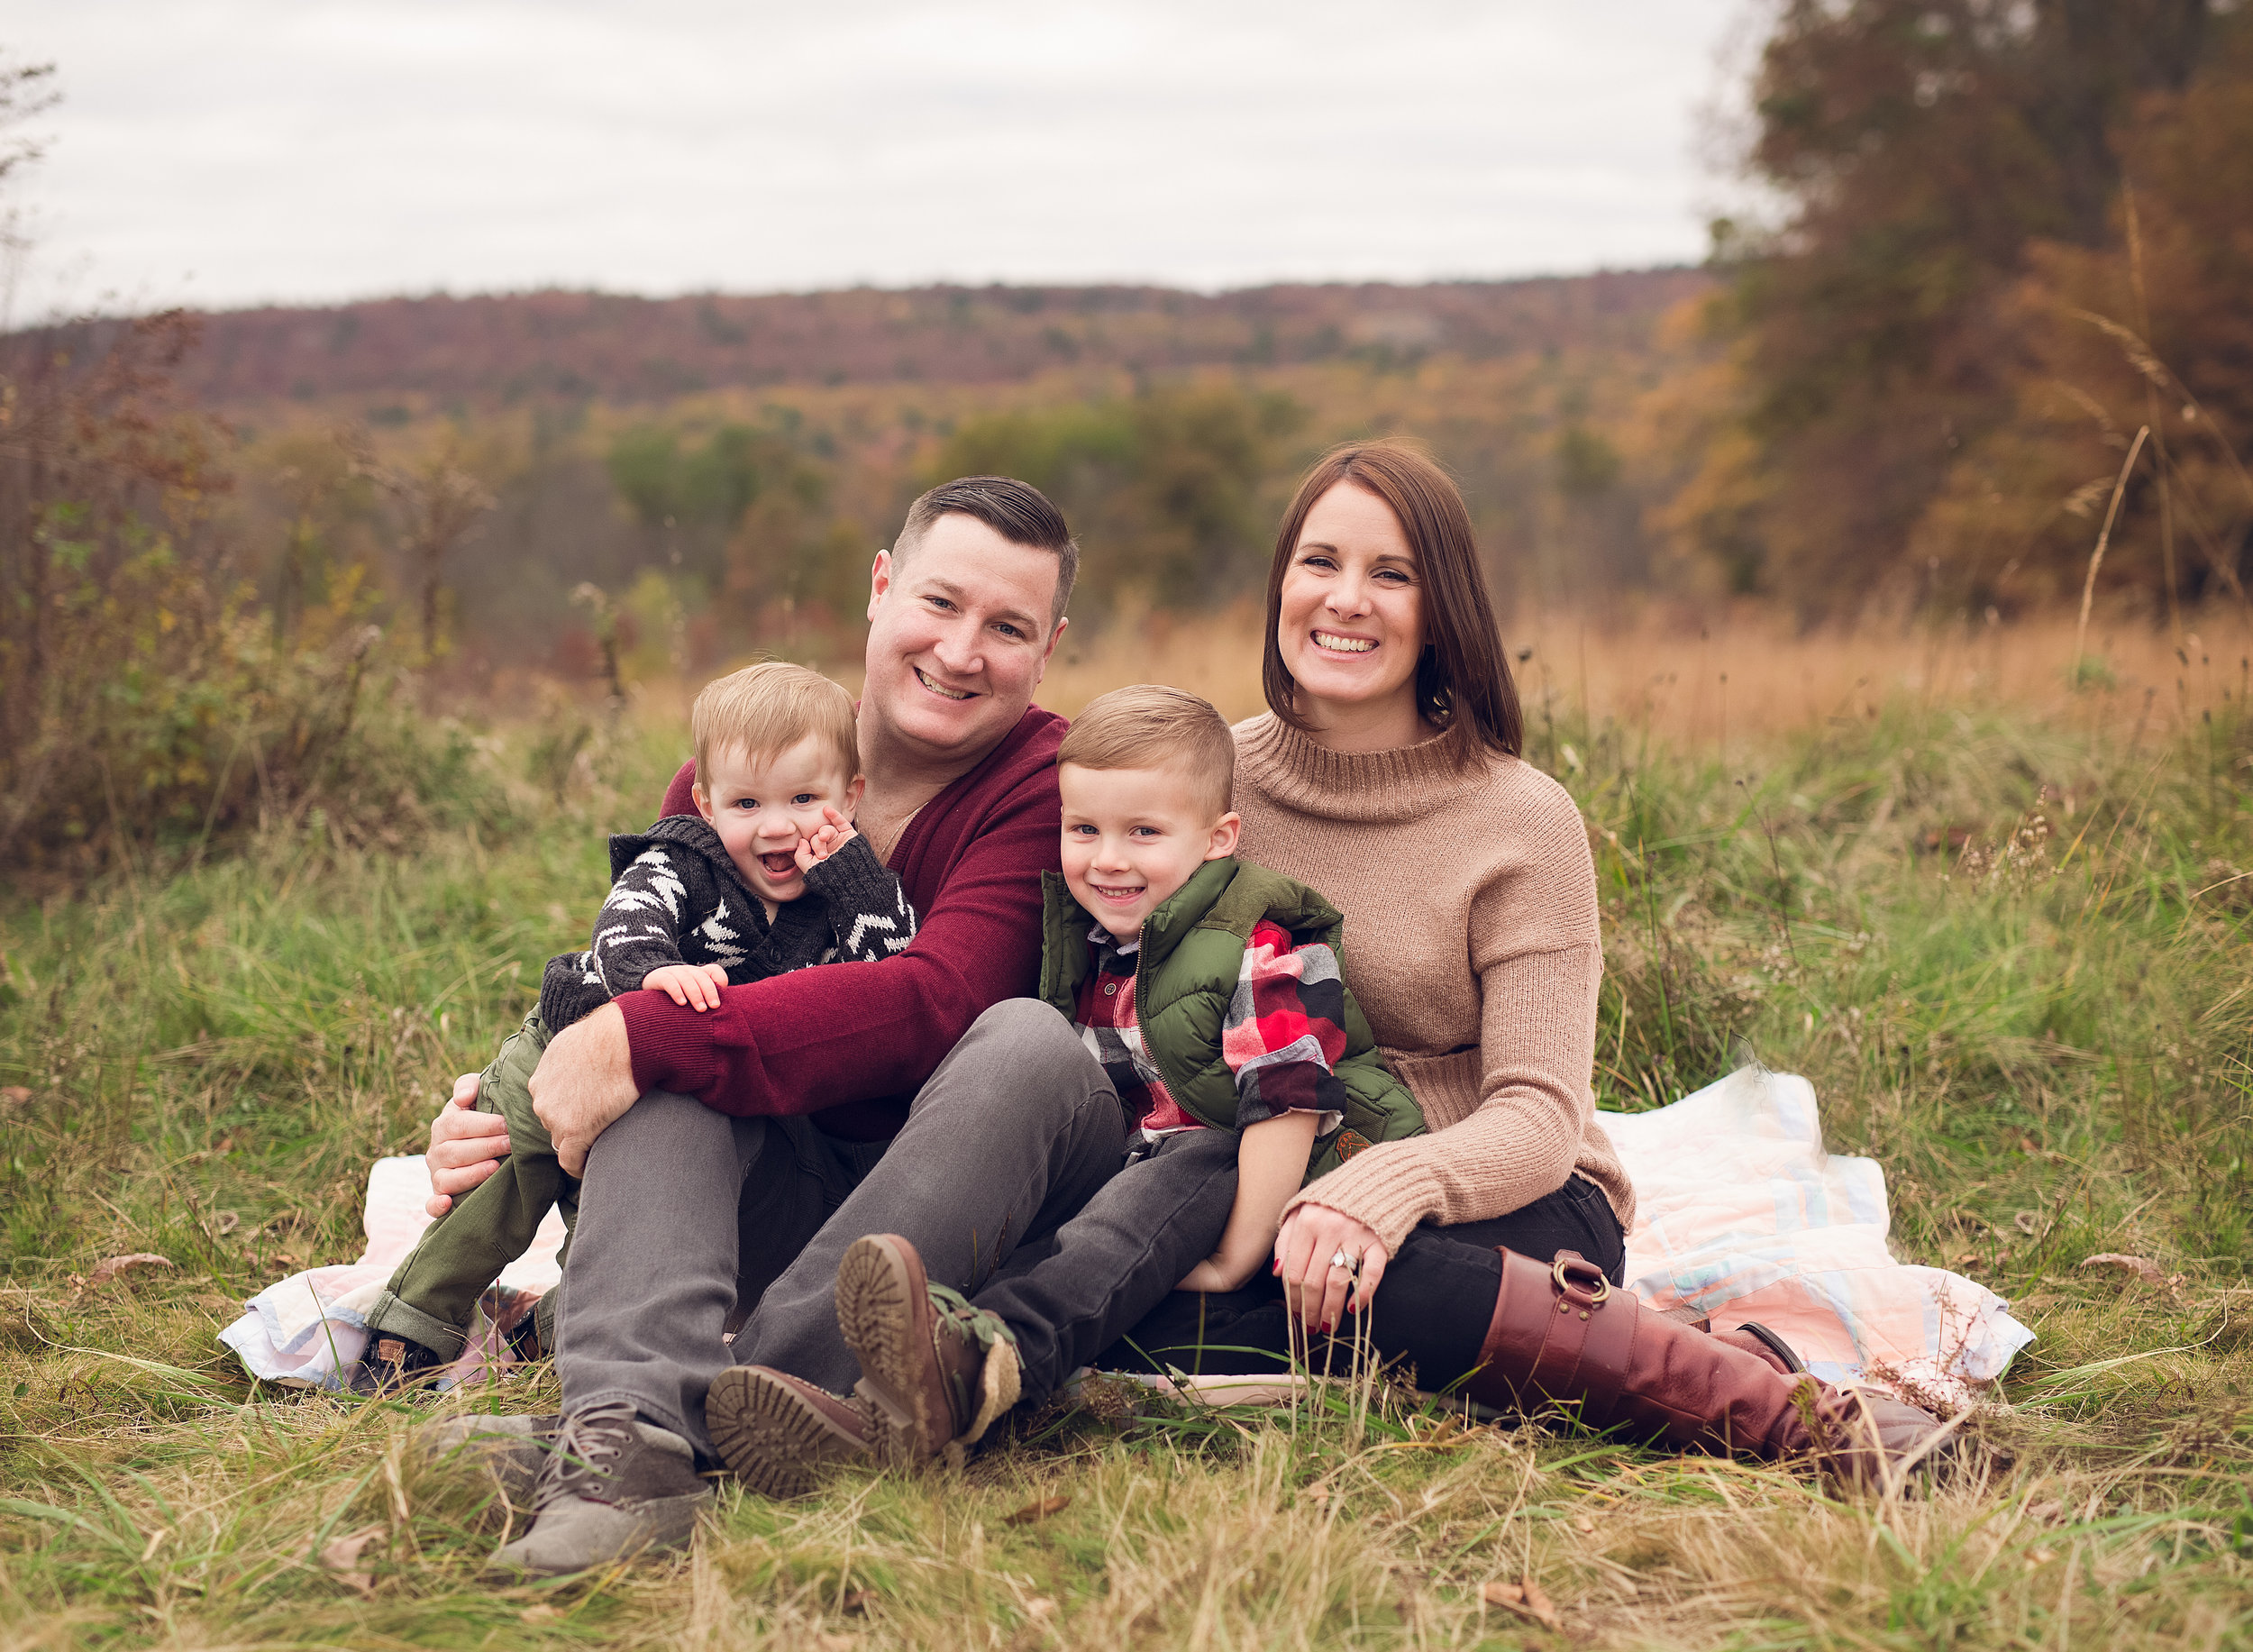 Northern New Jersey photographer- Hudson Valley- Children portrait photographer- Family photographer- Newborn photographer- fresh 48- posed- props- Bergen county- morris county- Ringwood, kinnelon, Oakland